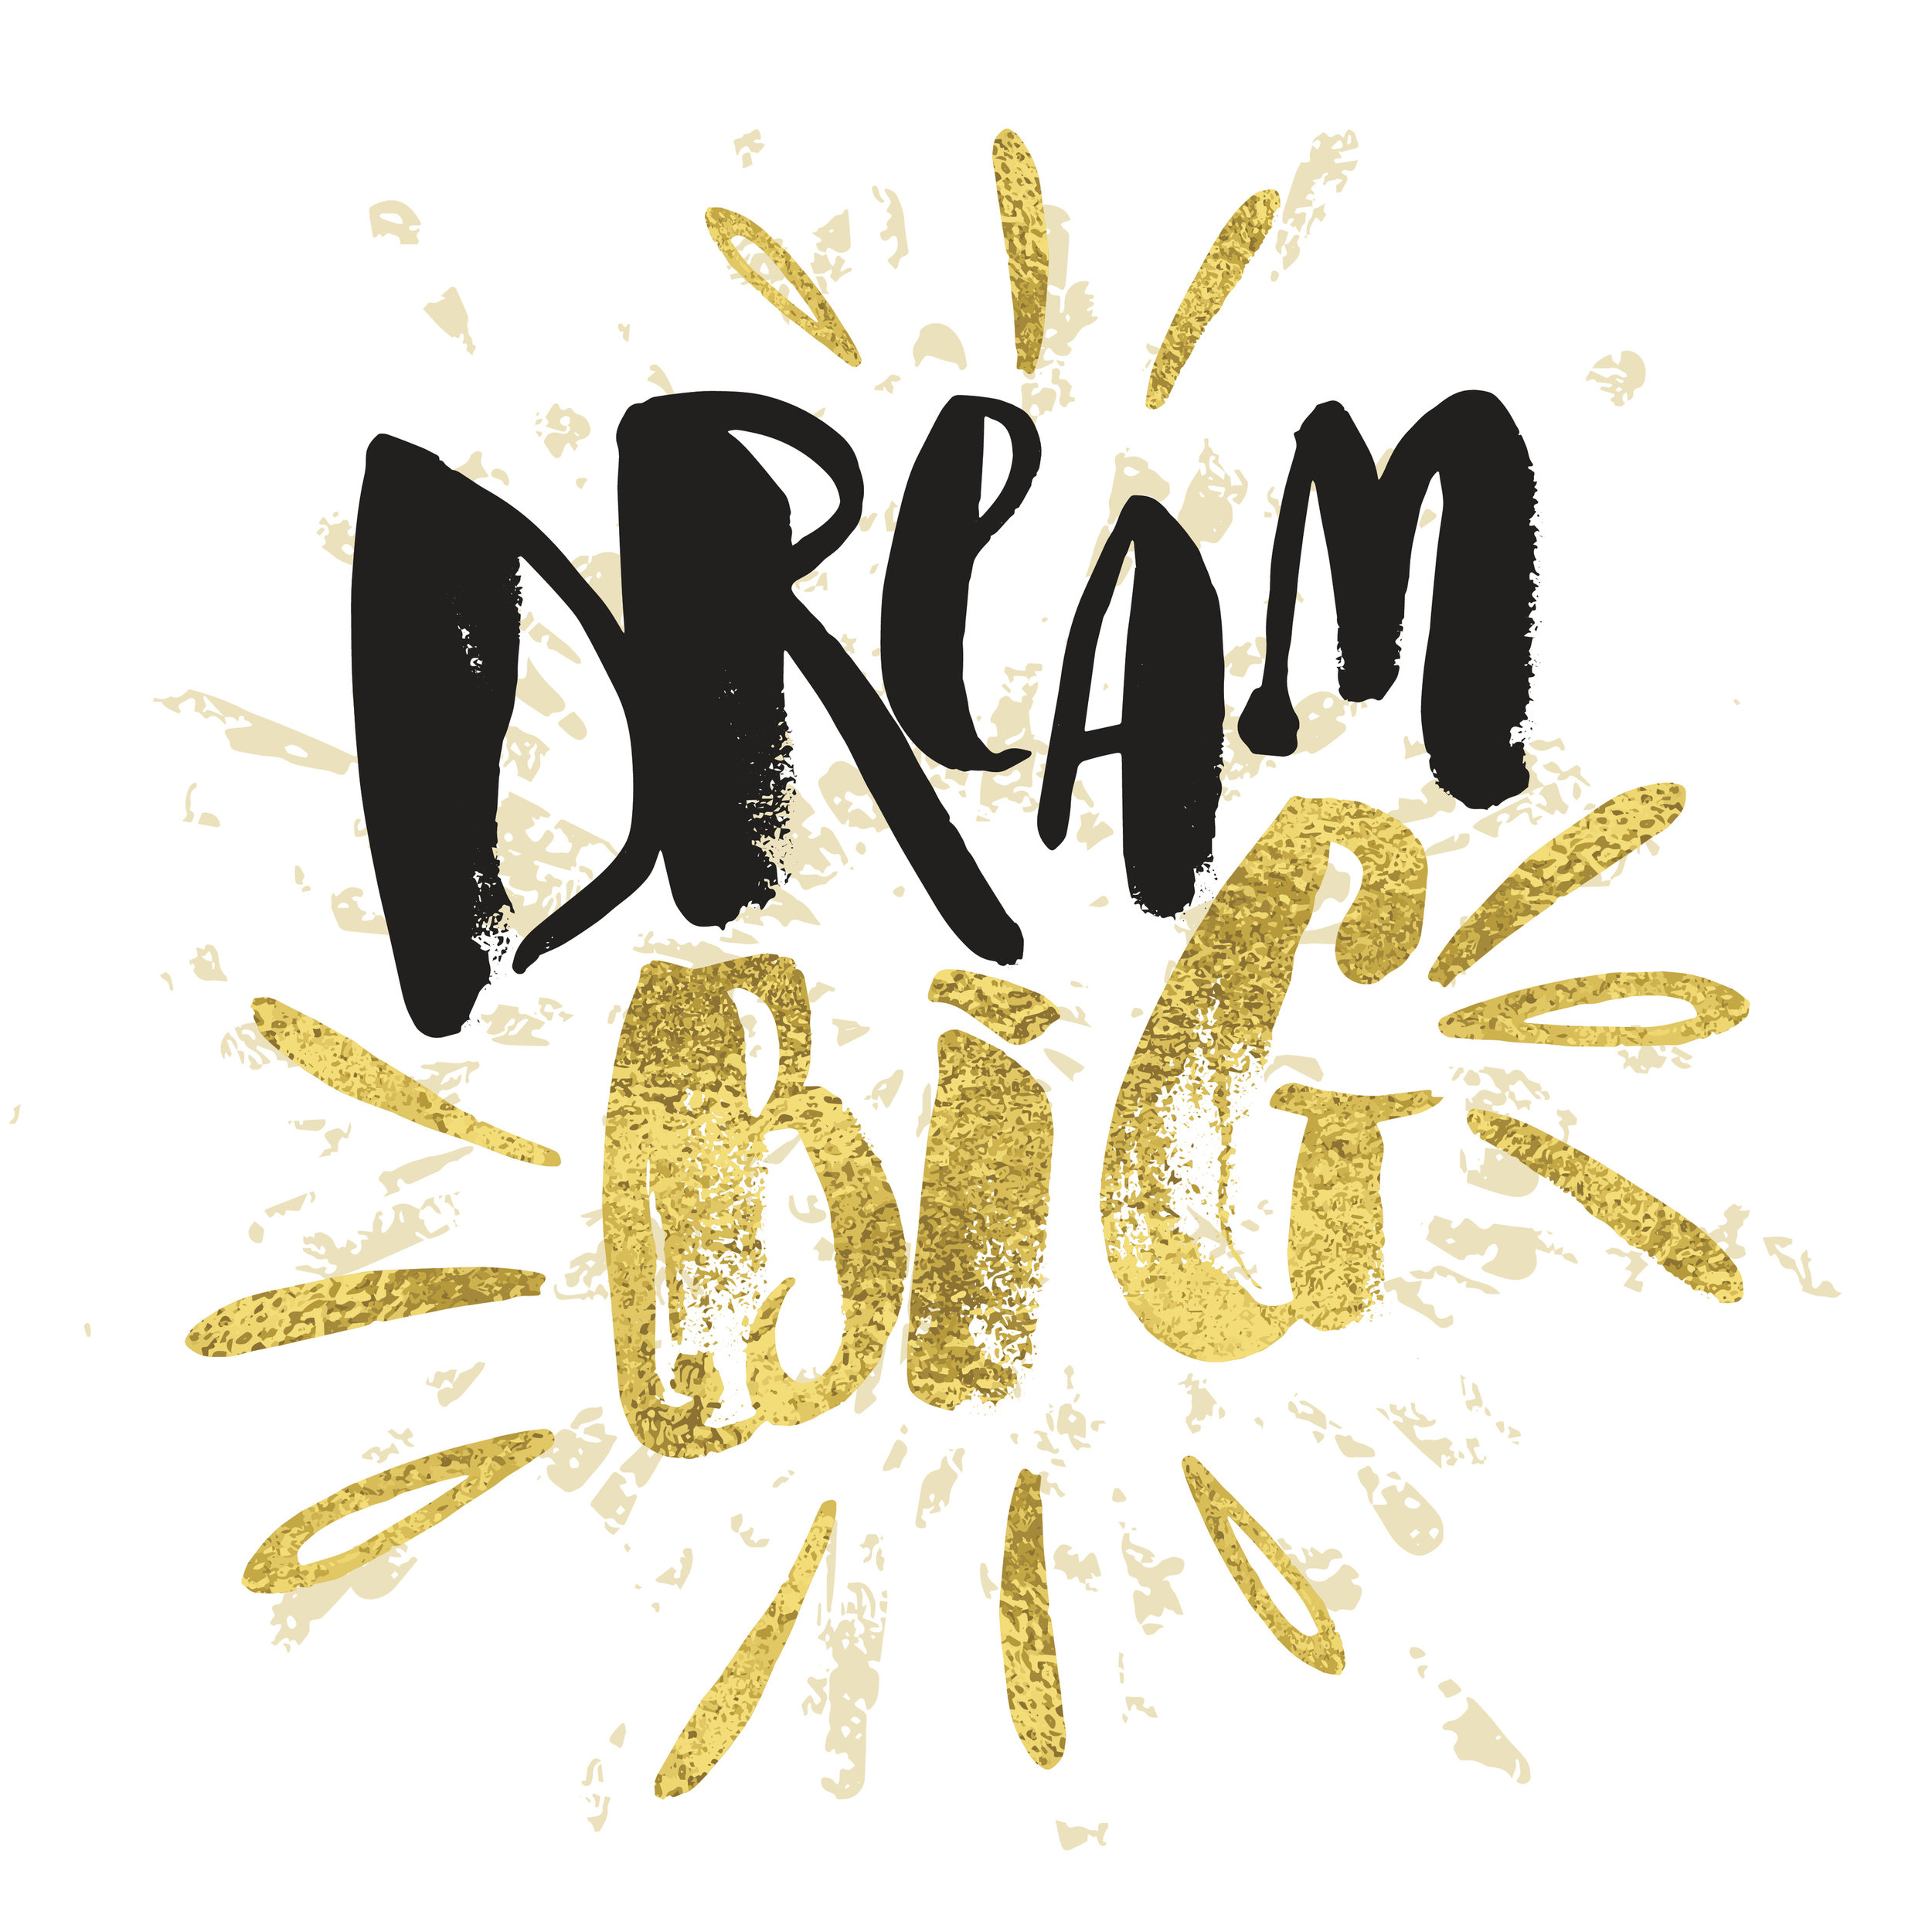 Dream-big-work-hard.-Concept-hand-lettering-motivation-gold-glit-504255258_3159x3159.jpeg